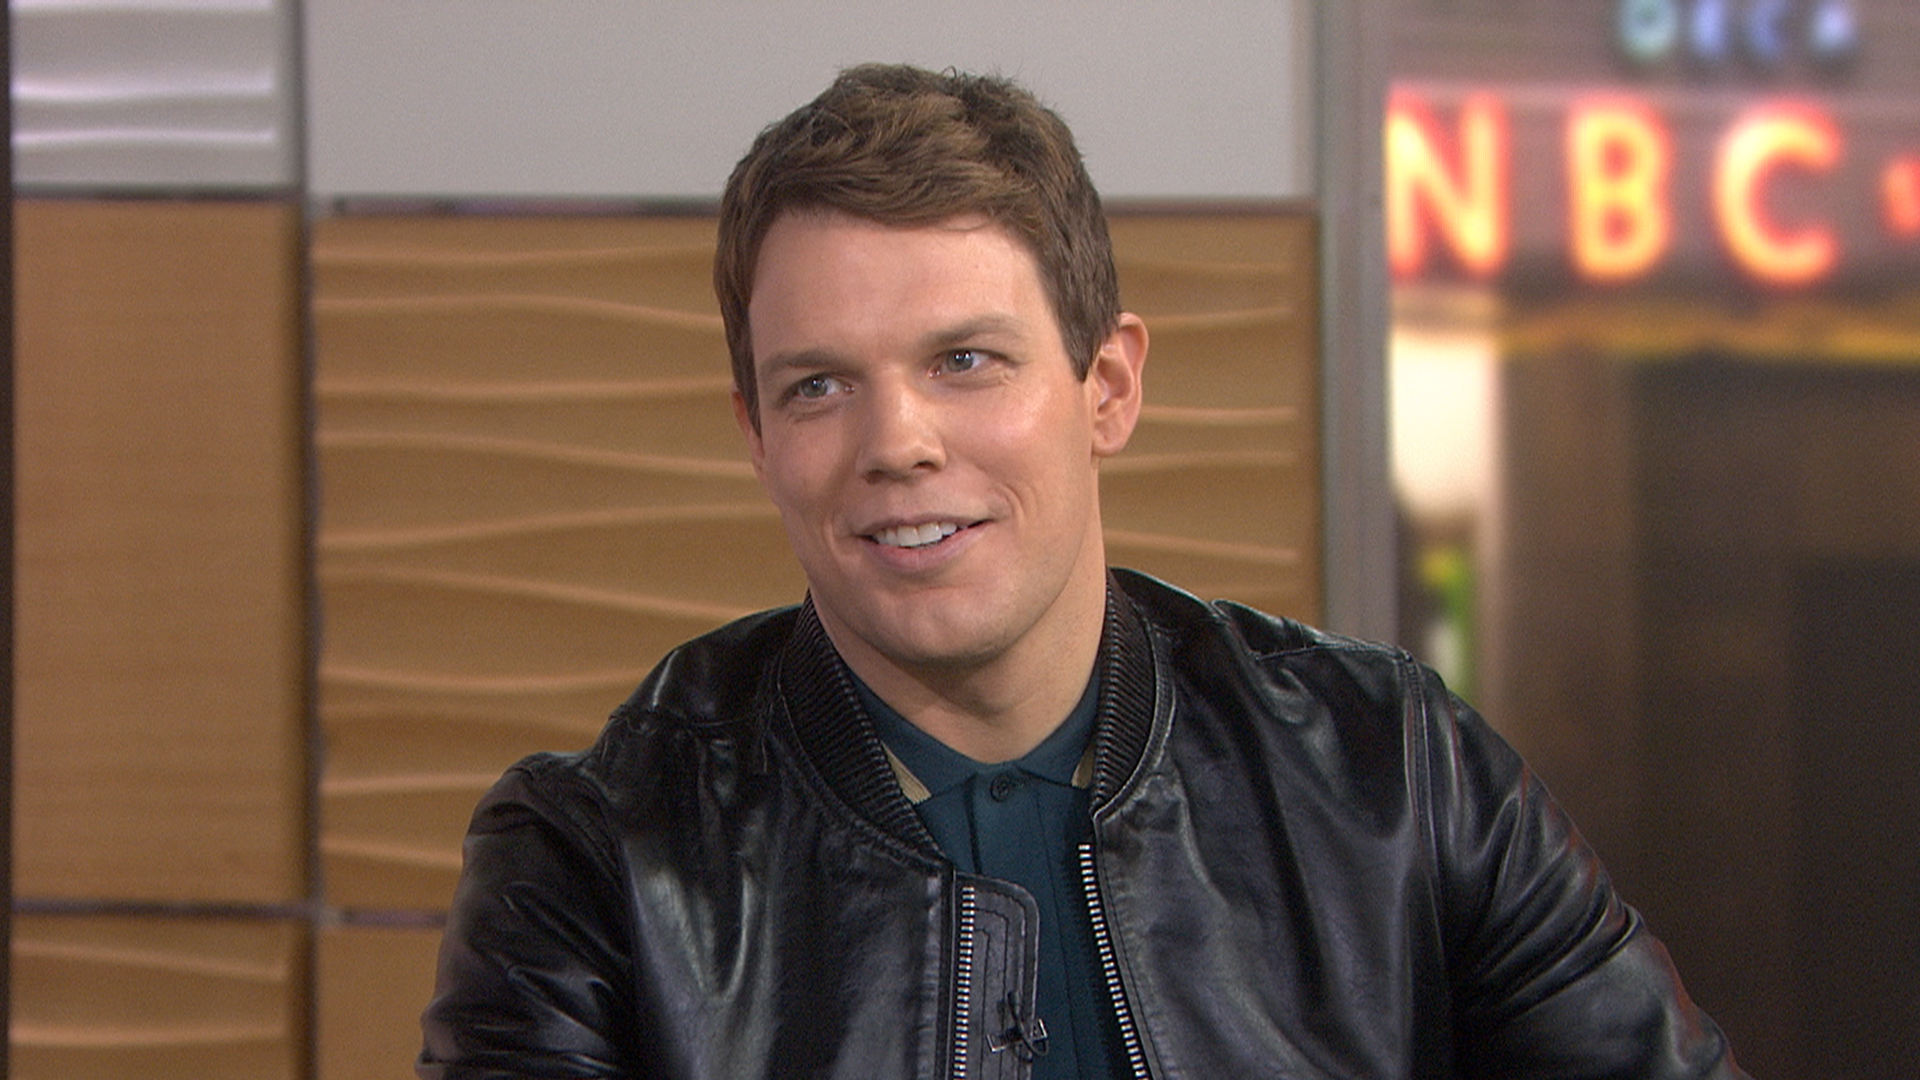 jake lacy the officejake lacy wife, jake lacy facebook, jake lacy instagram, jake lacy height, jake lacy, jake lacy the office, jake lacy wiki, jake lacy interview, jake lacy biography, jake lacy imdb, jake lacy married, jake lacy shirtless, jake lacy twitter, jake lacy gay, jake lacy dating, jake lacy love the coopers, jake lacy net worth, jake lacy wedding, jake lacy how to be single, jake lacy carol